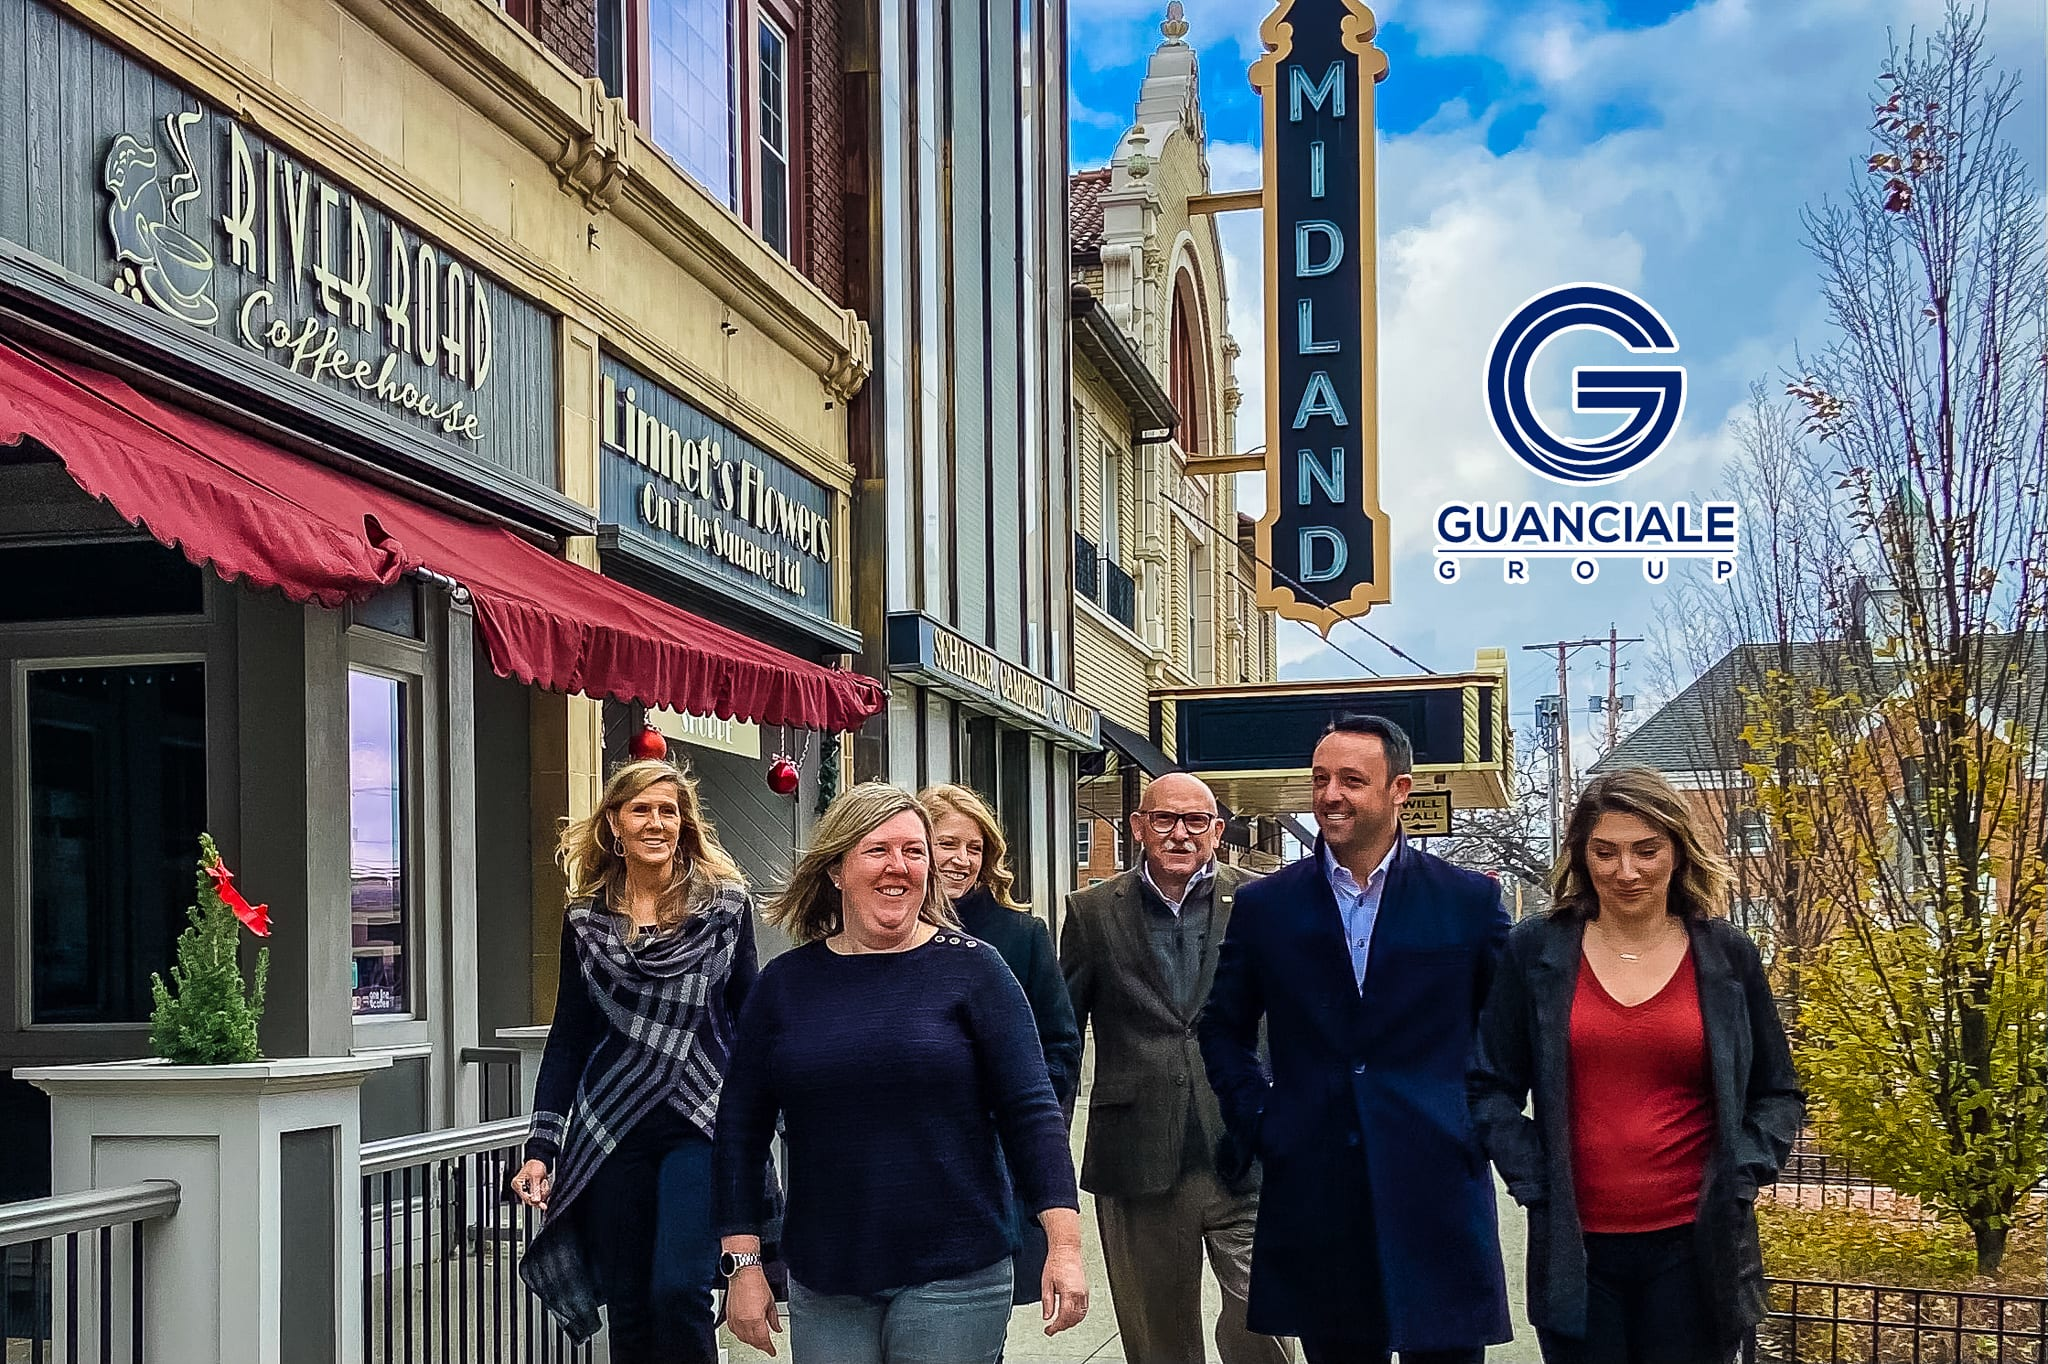 guanciale group